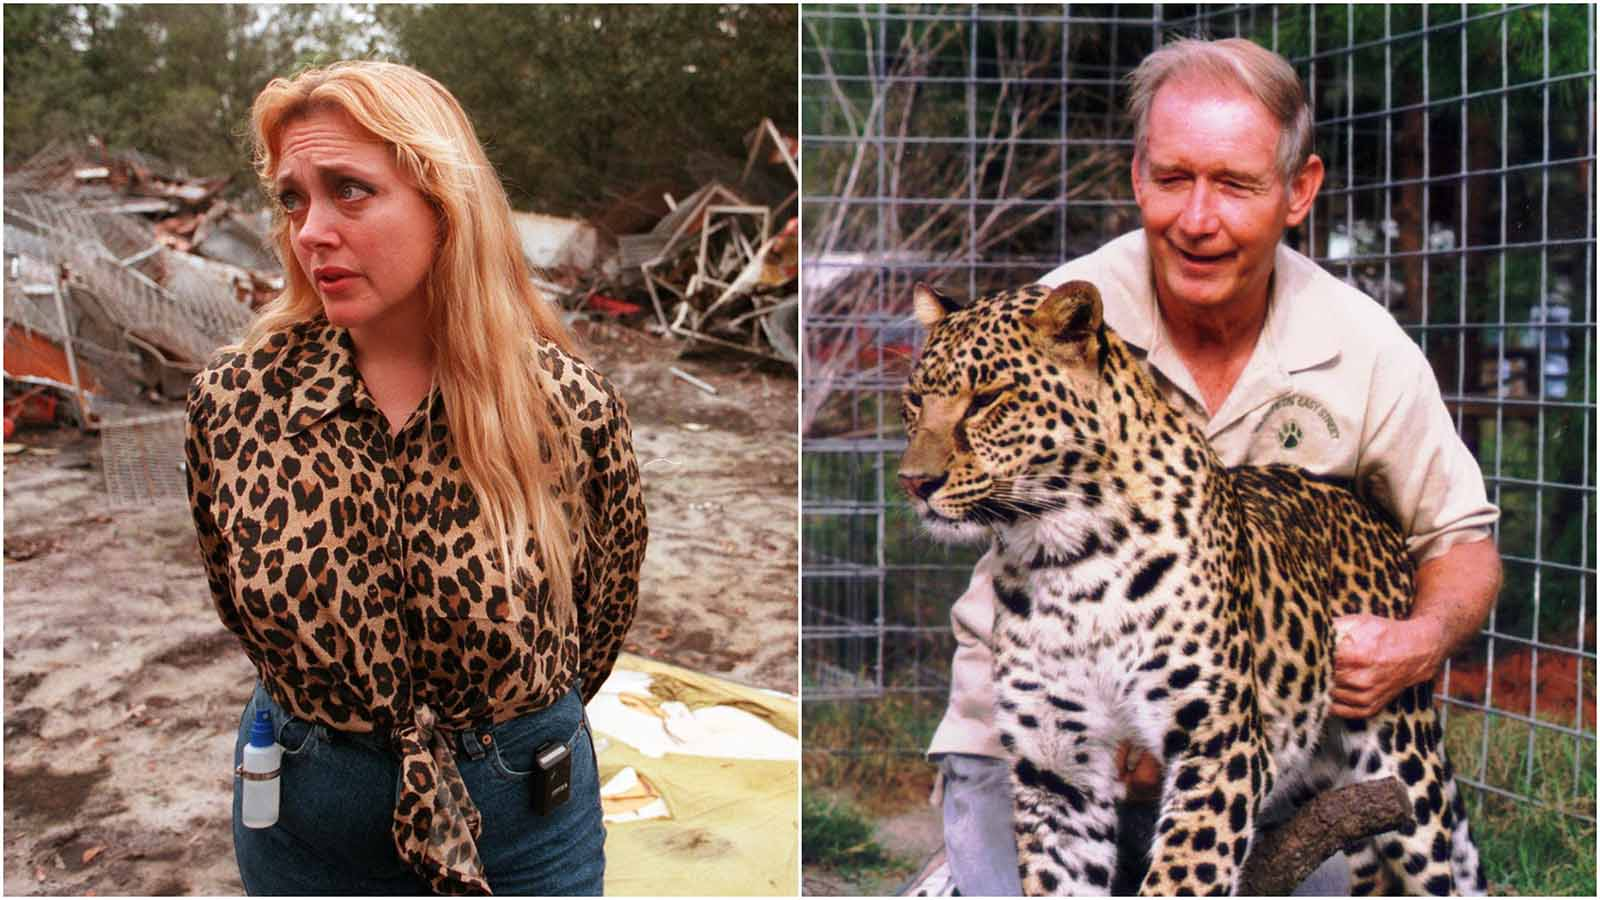 'Tiger King' has shocked Netflix viewers since its release, but the main question everyone's walking away with isn't about Joe Exotic, but Carole Baskin.